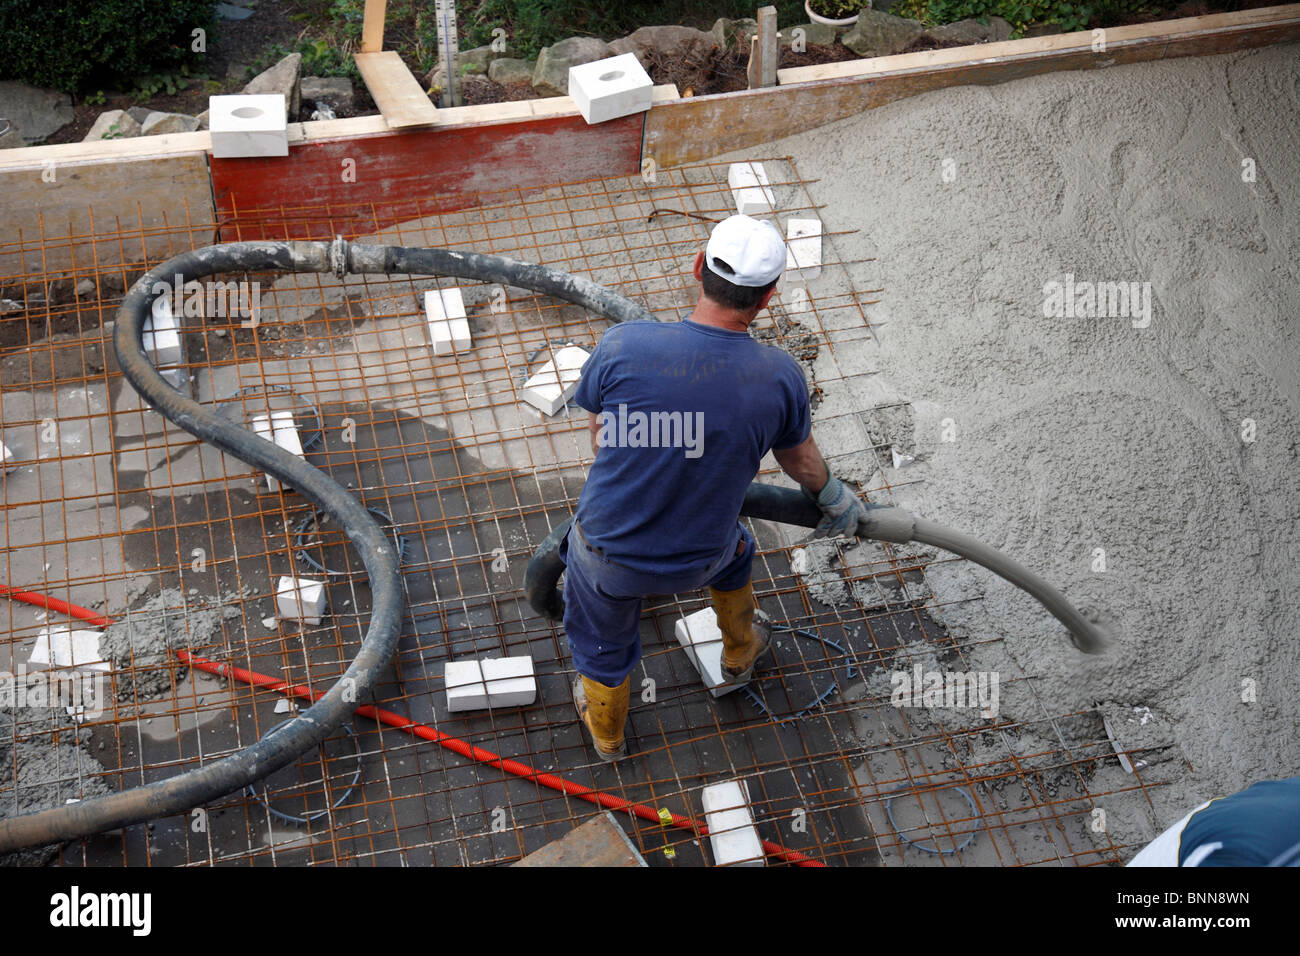 building industry superstructure work building site building works structural work handicraft trade professional - Stock Image